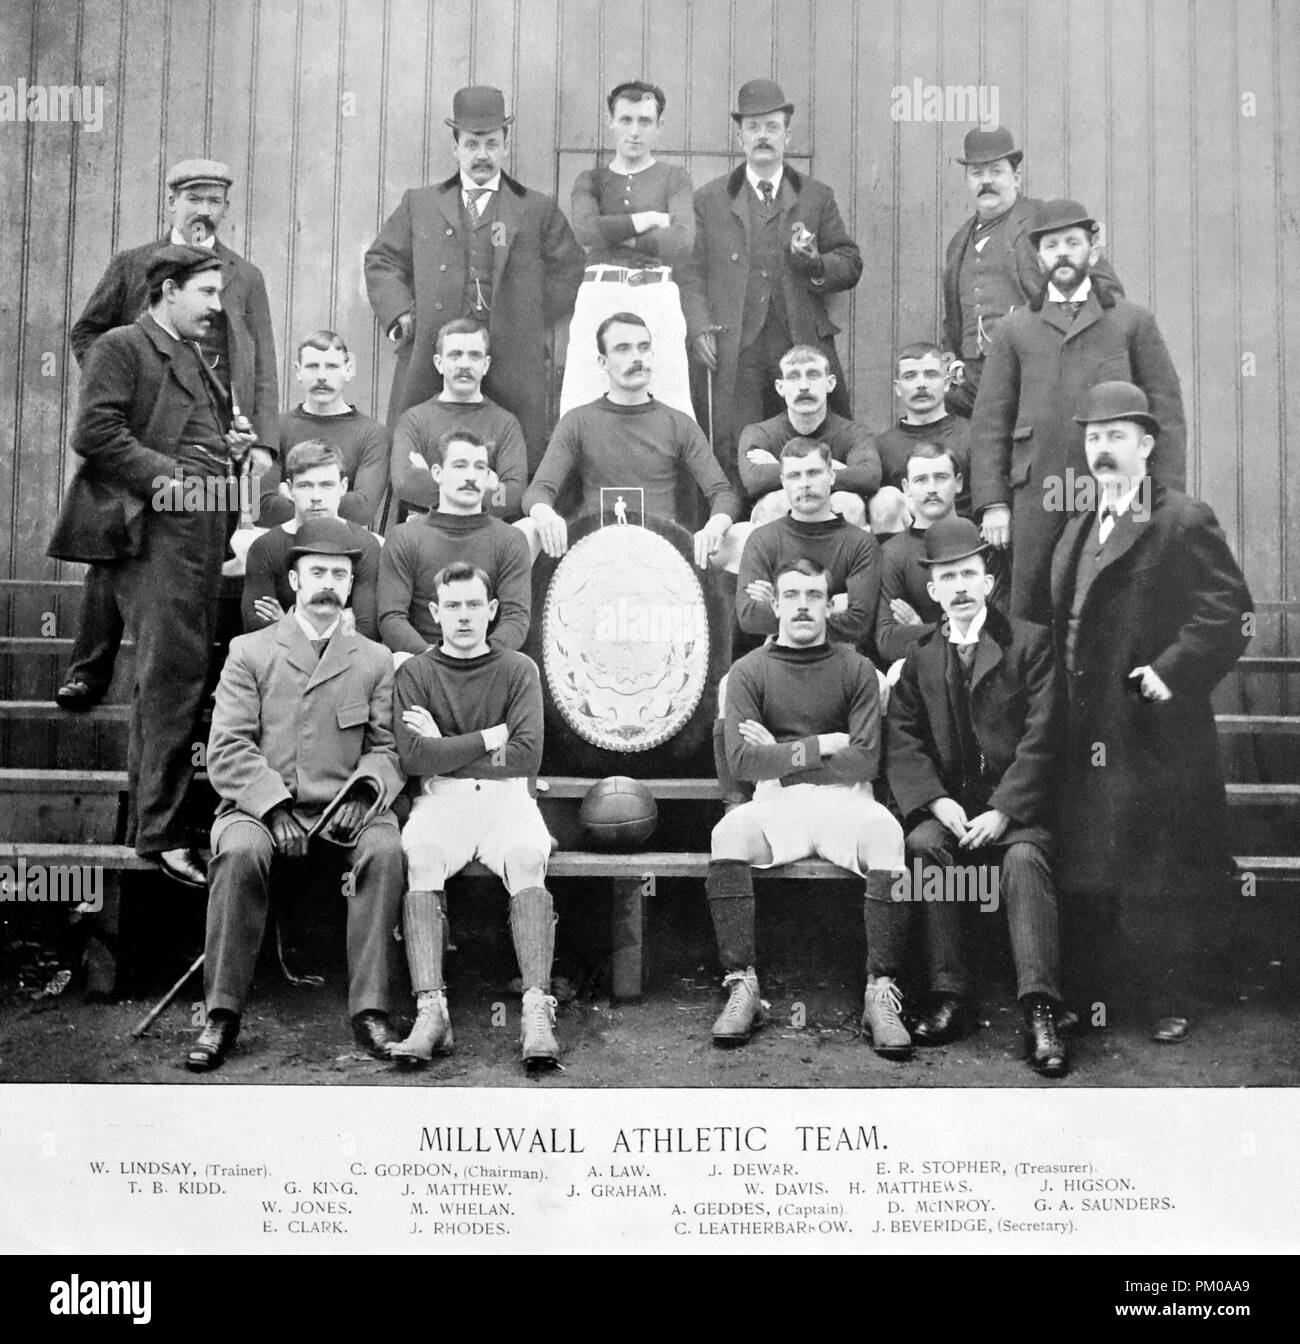 Millwall Athletic Football Team, 1890s - Stock Image